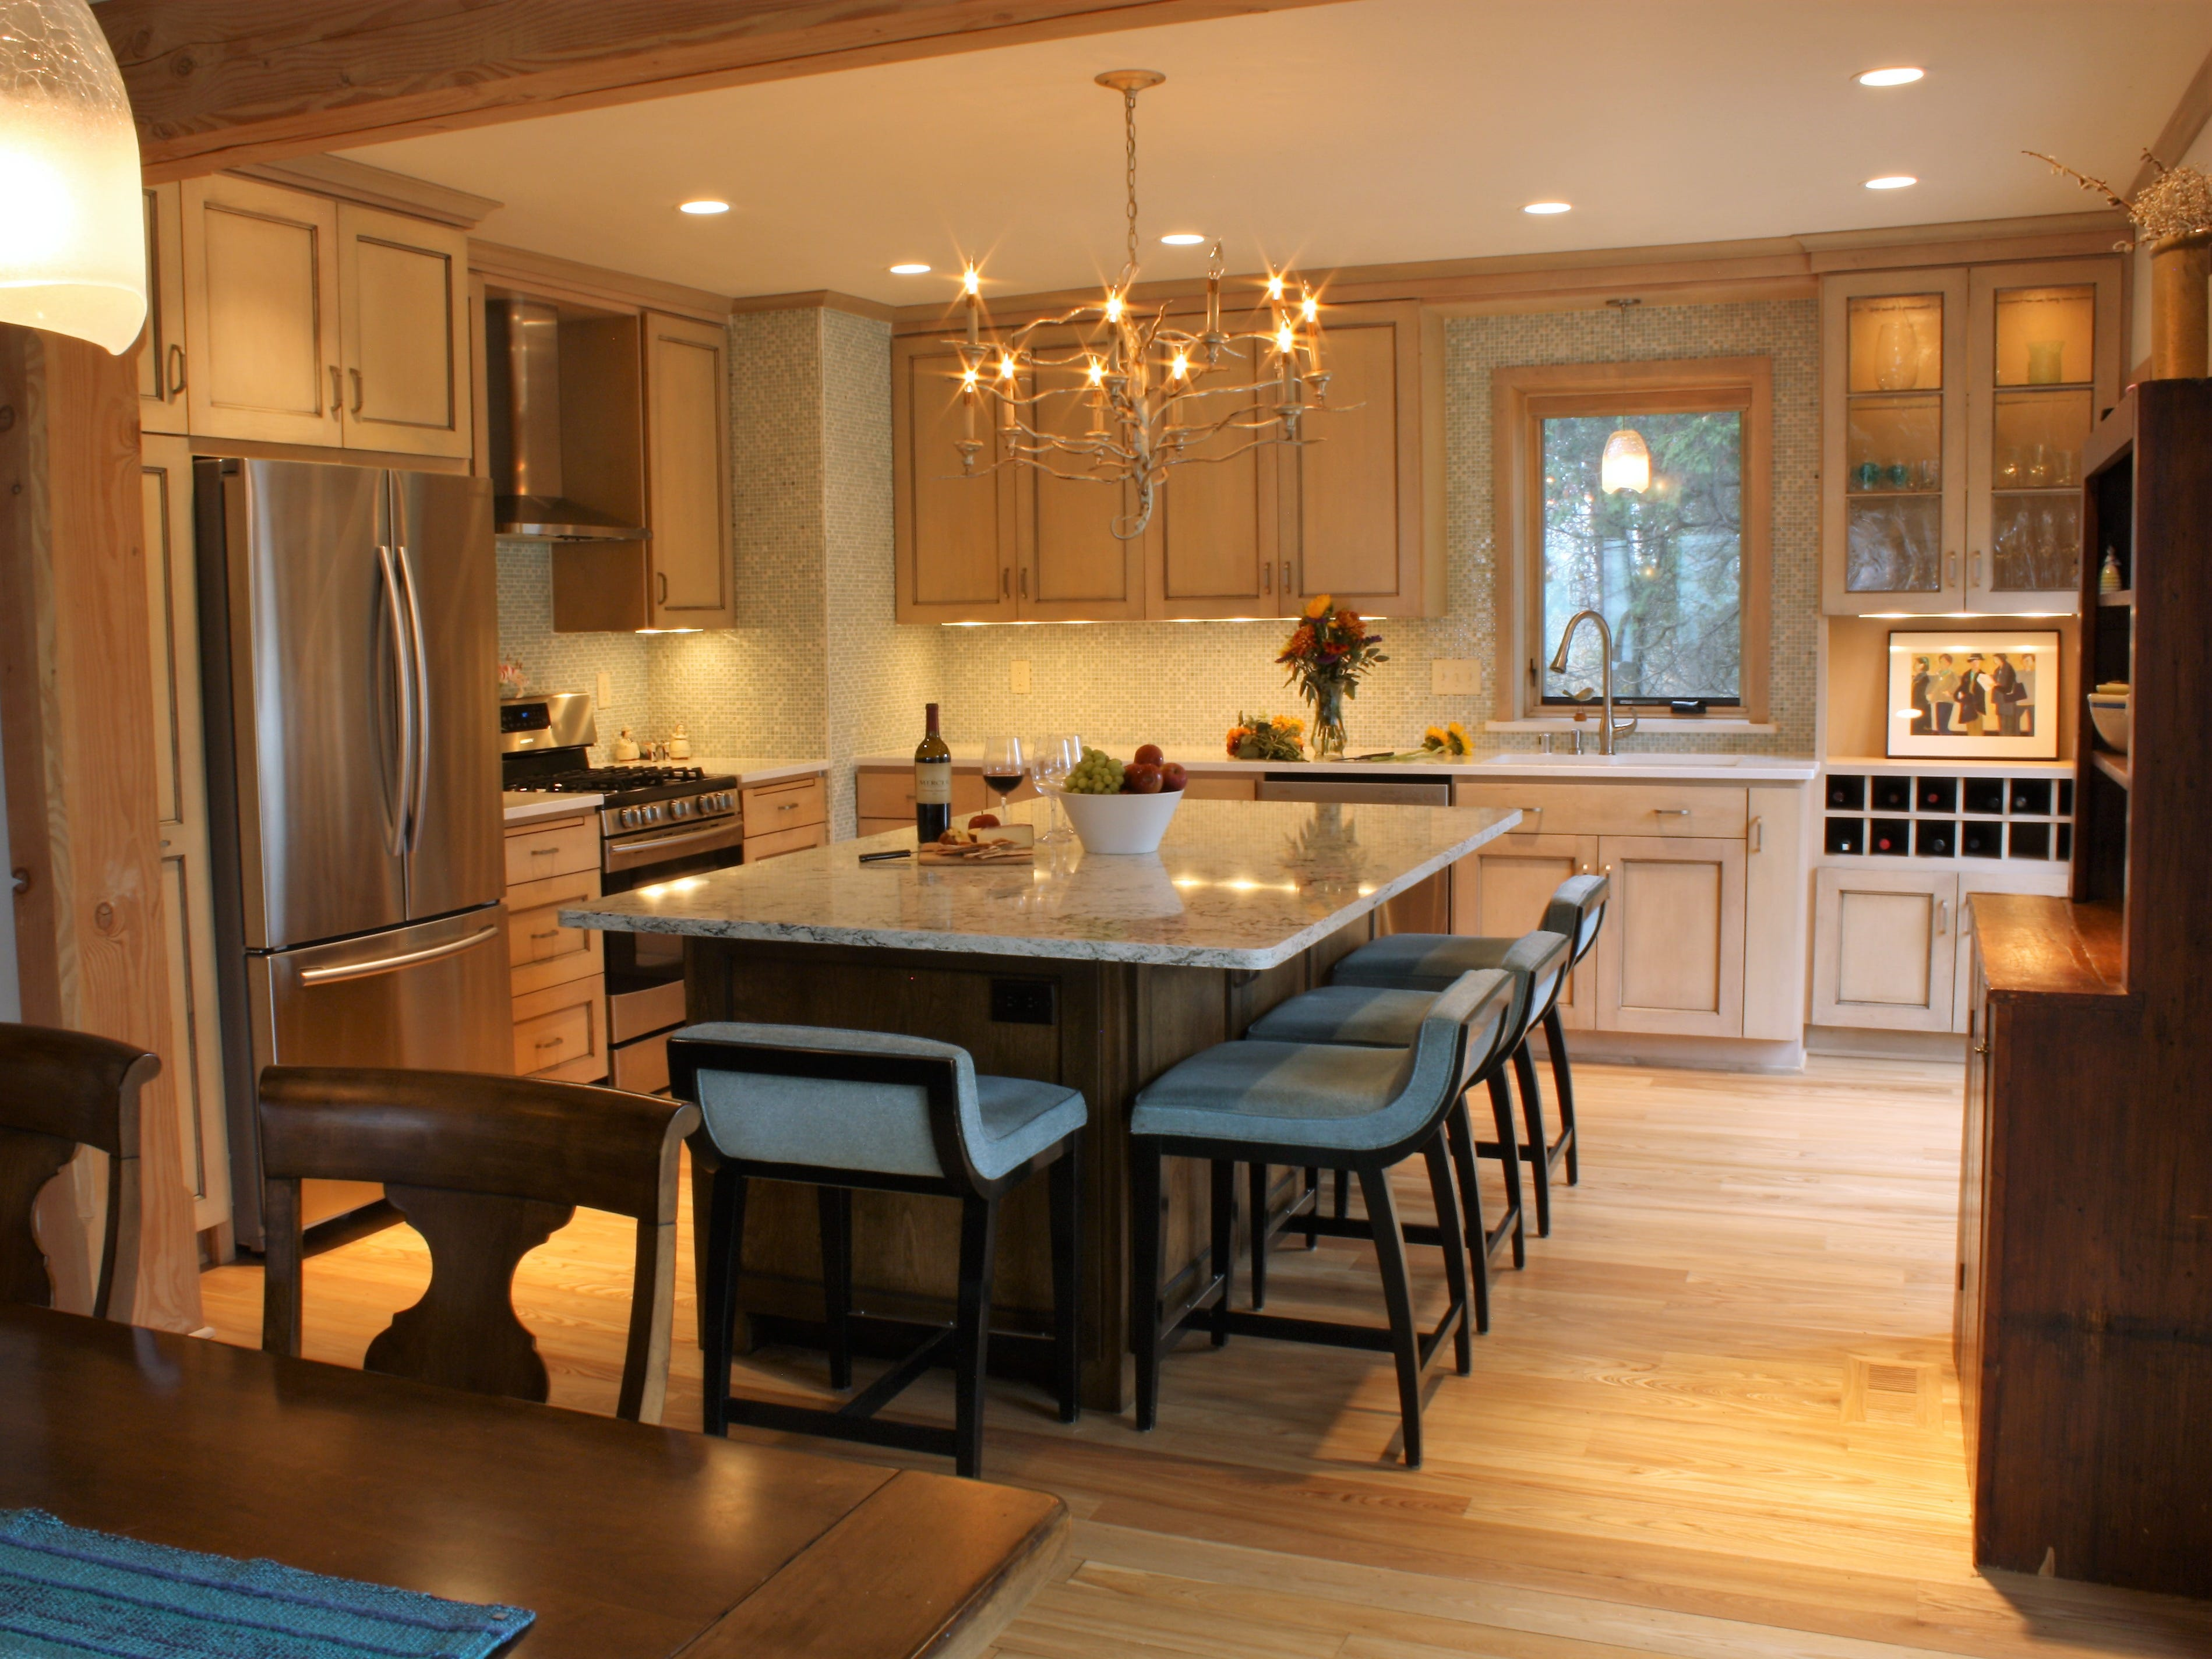 This large kitchen island in Port Washington was designed with a furniture like appearance. It's a gathering spot and also serves as a work surface for quilting and craft projects. (SAP Woodworking)